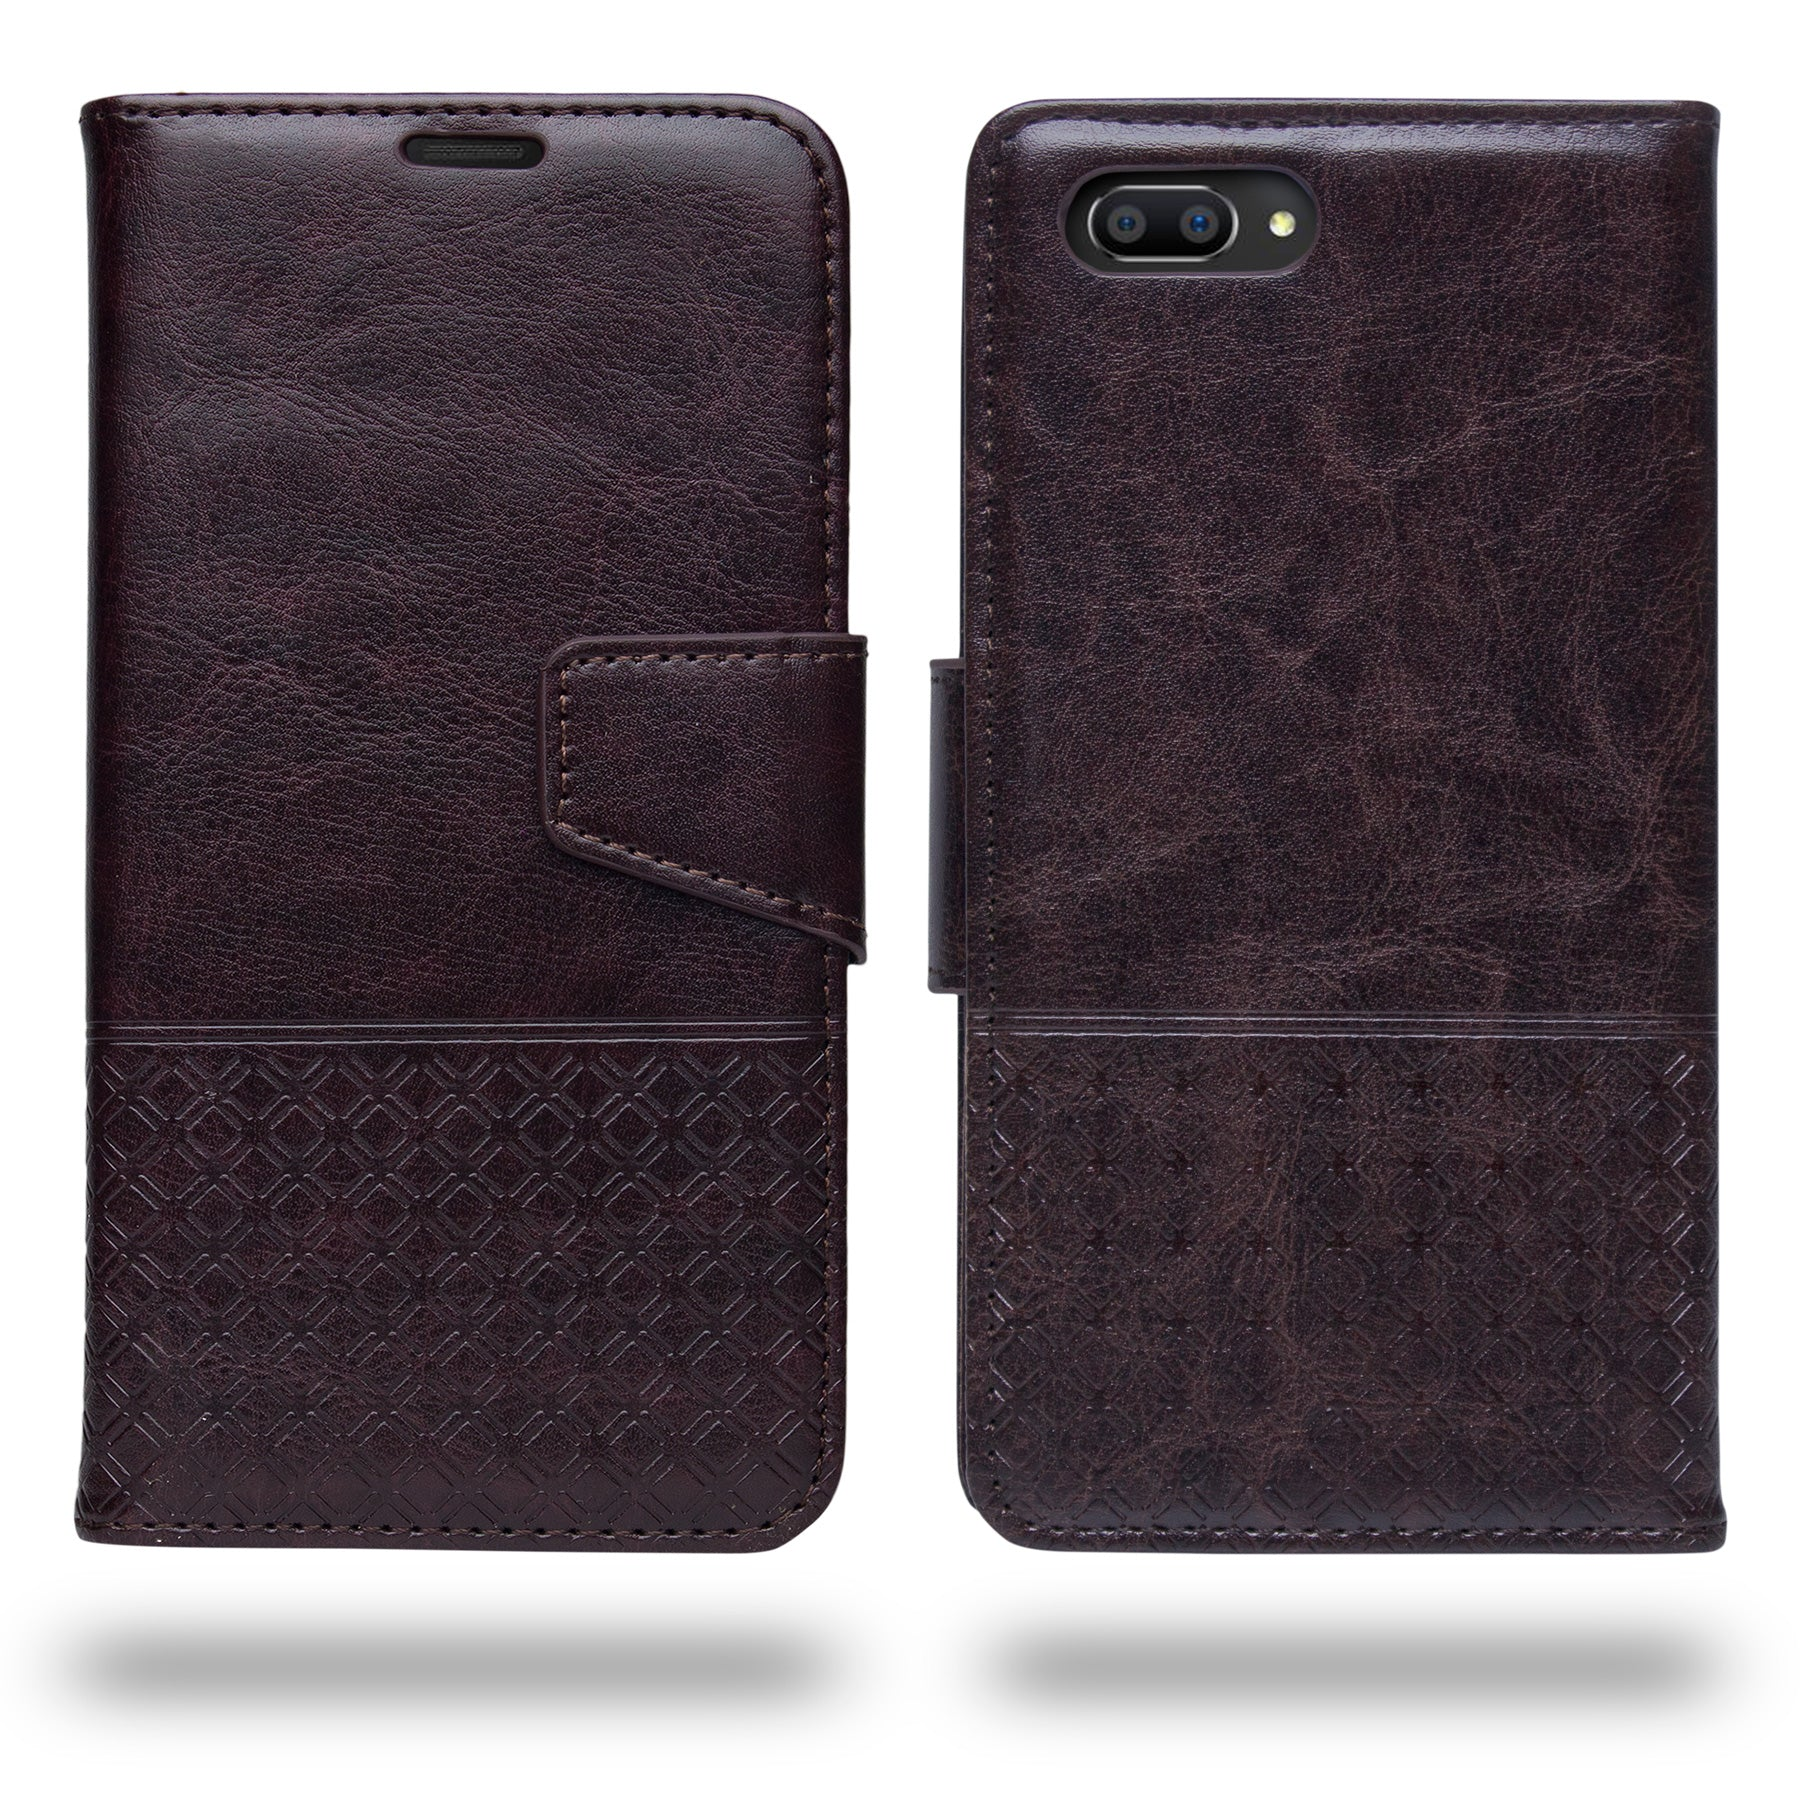 Ceego Luxuria Compact Wallet Flip Cover for RealMe C1 (Chestnut Brown)